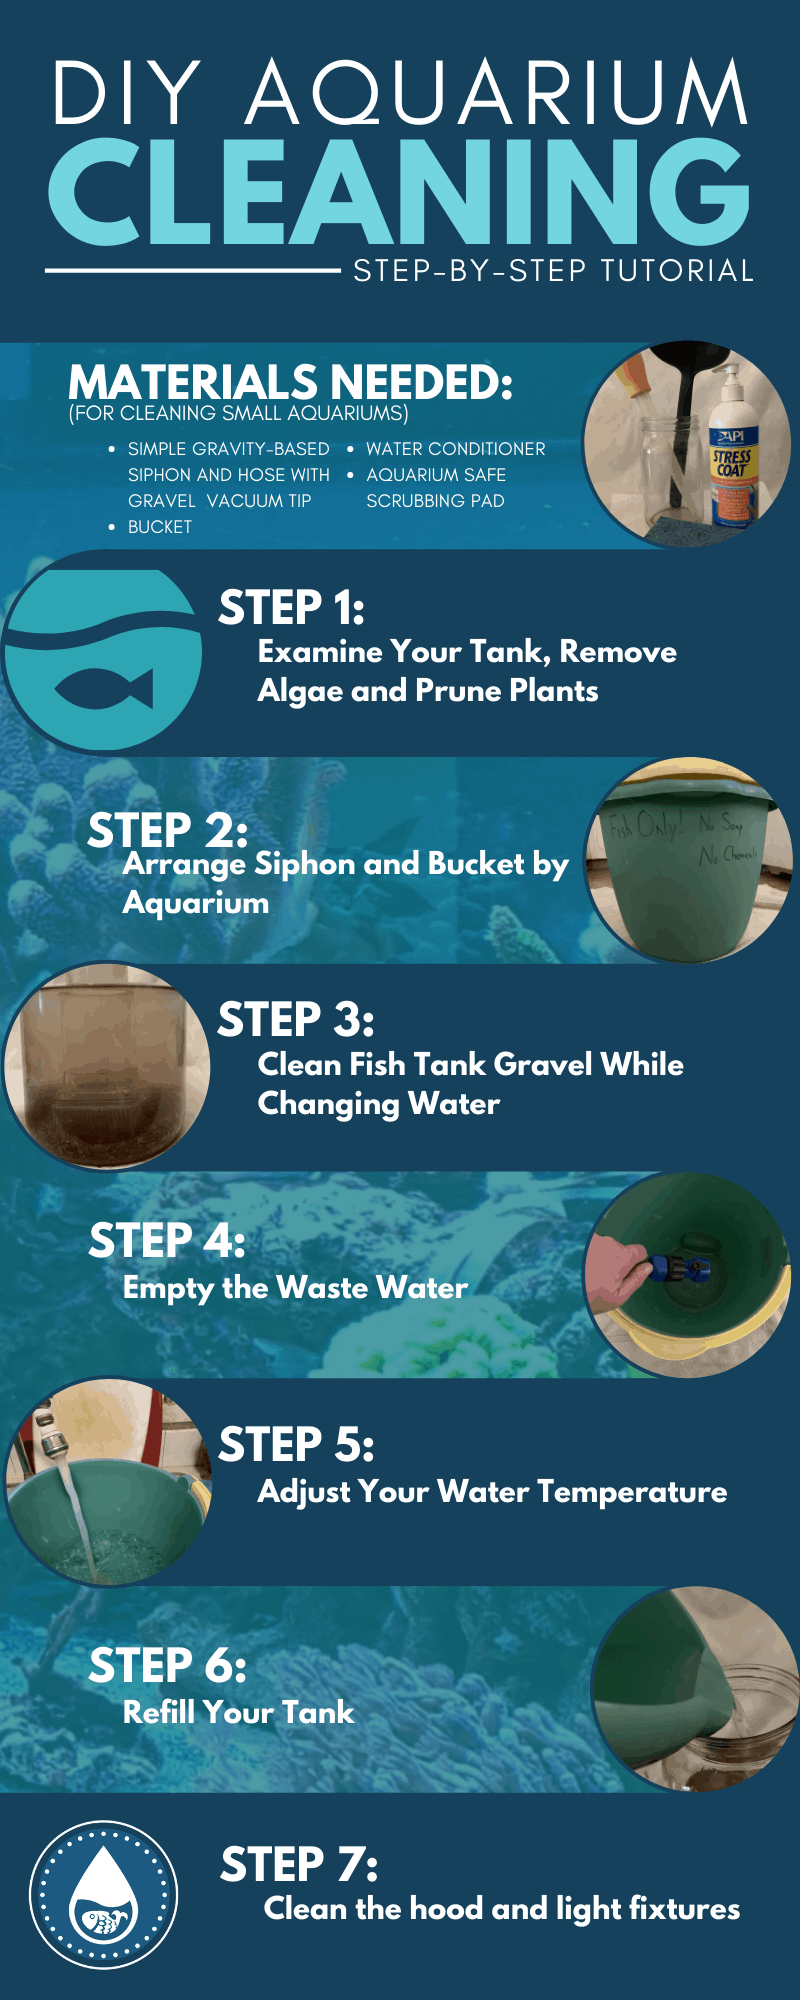 DIY Aquarium Cleaning—Step-by-Step Tutorial - Infographic